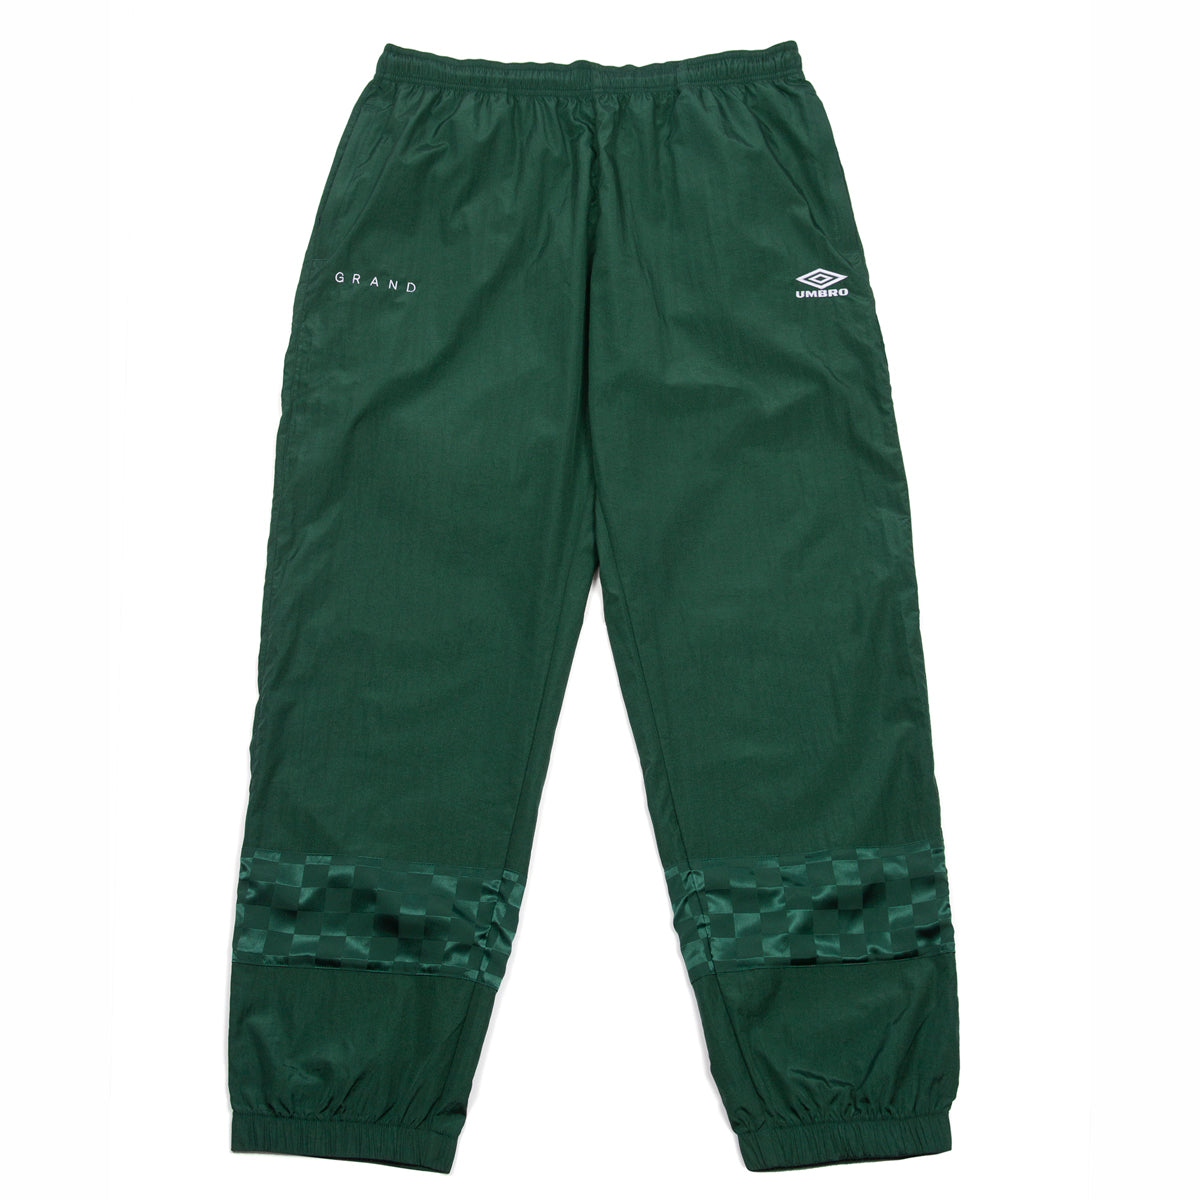 Grand Collection x Umbro Pant Forest Green